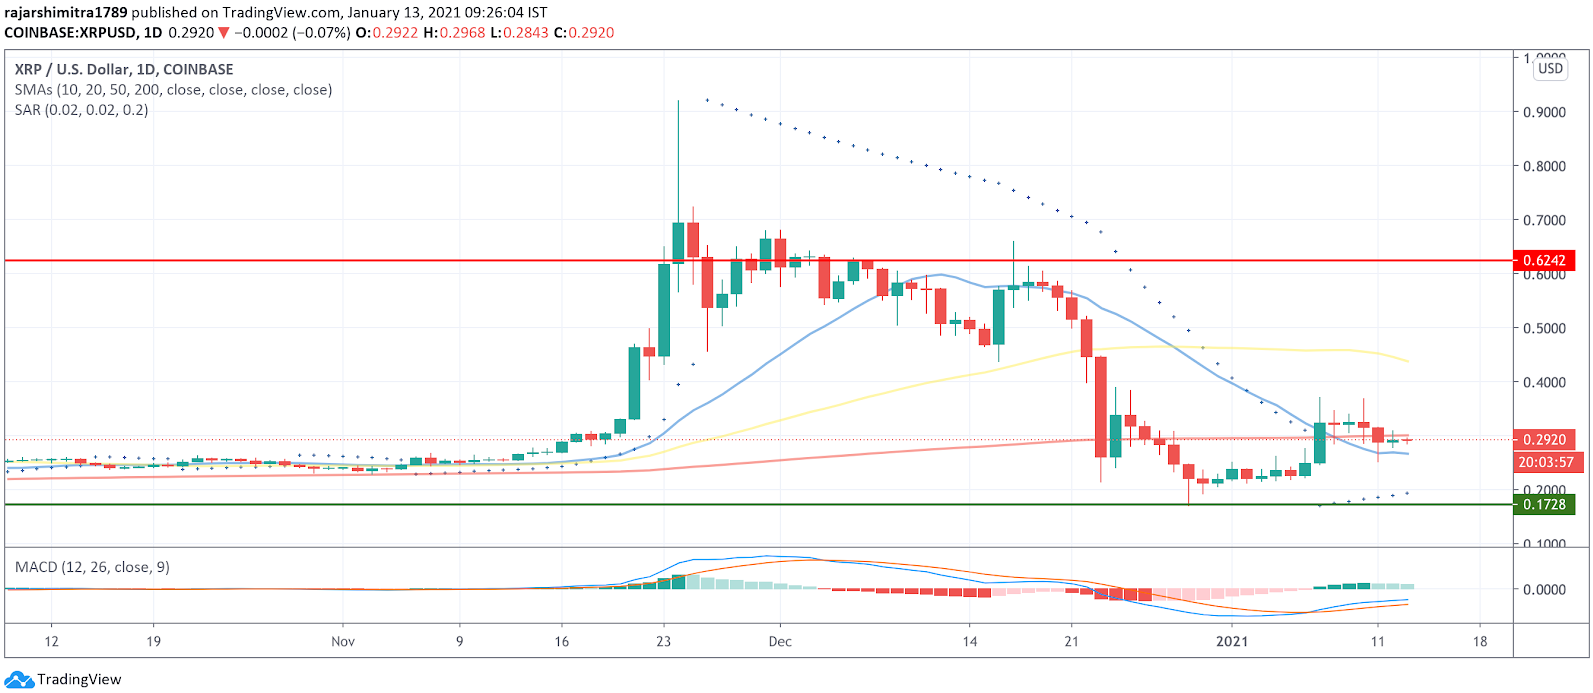 xrp/usd daily chart 011321